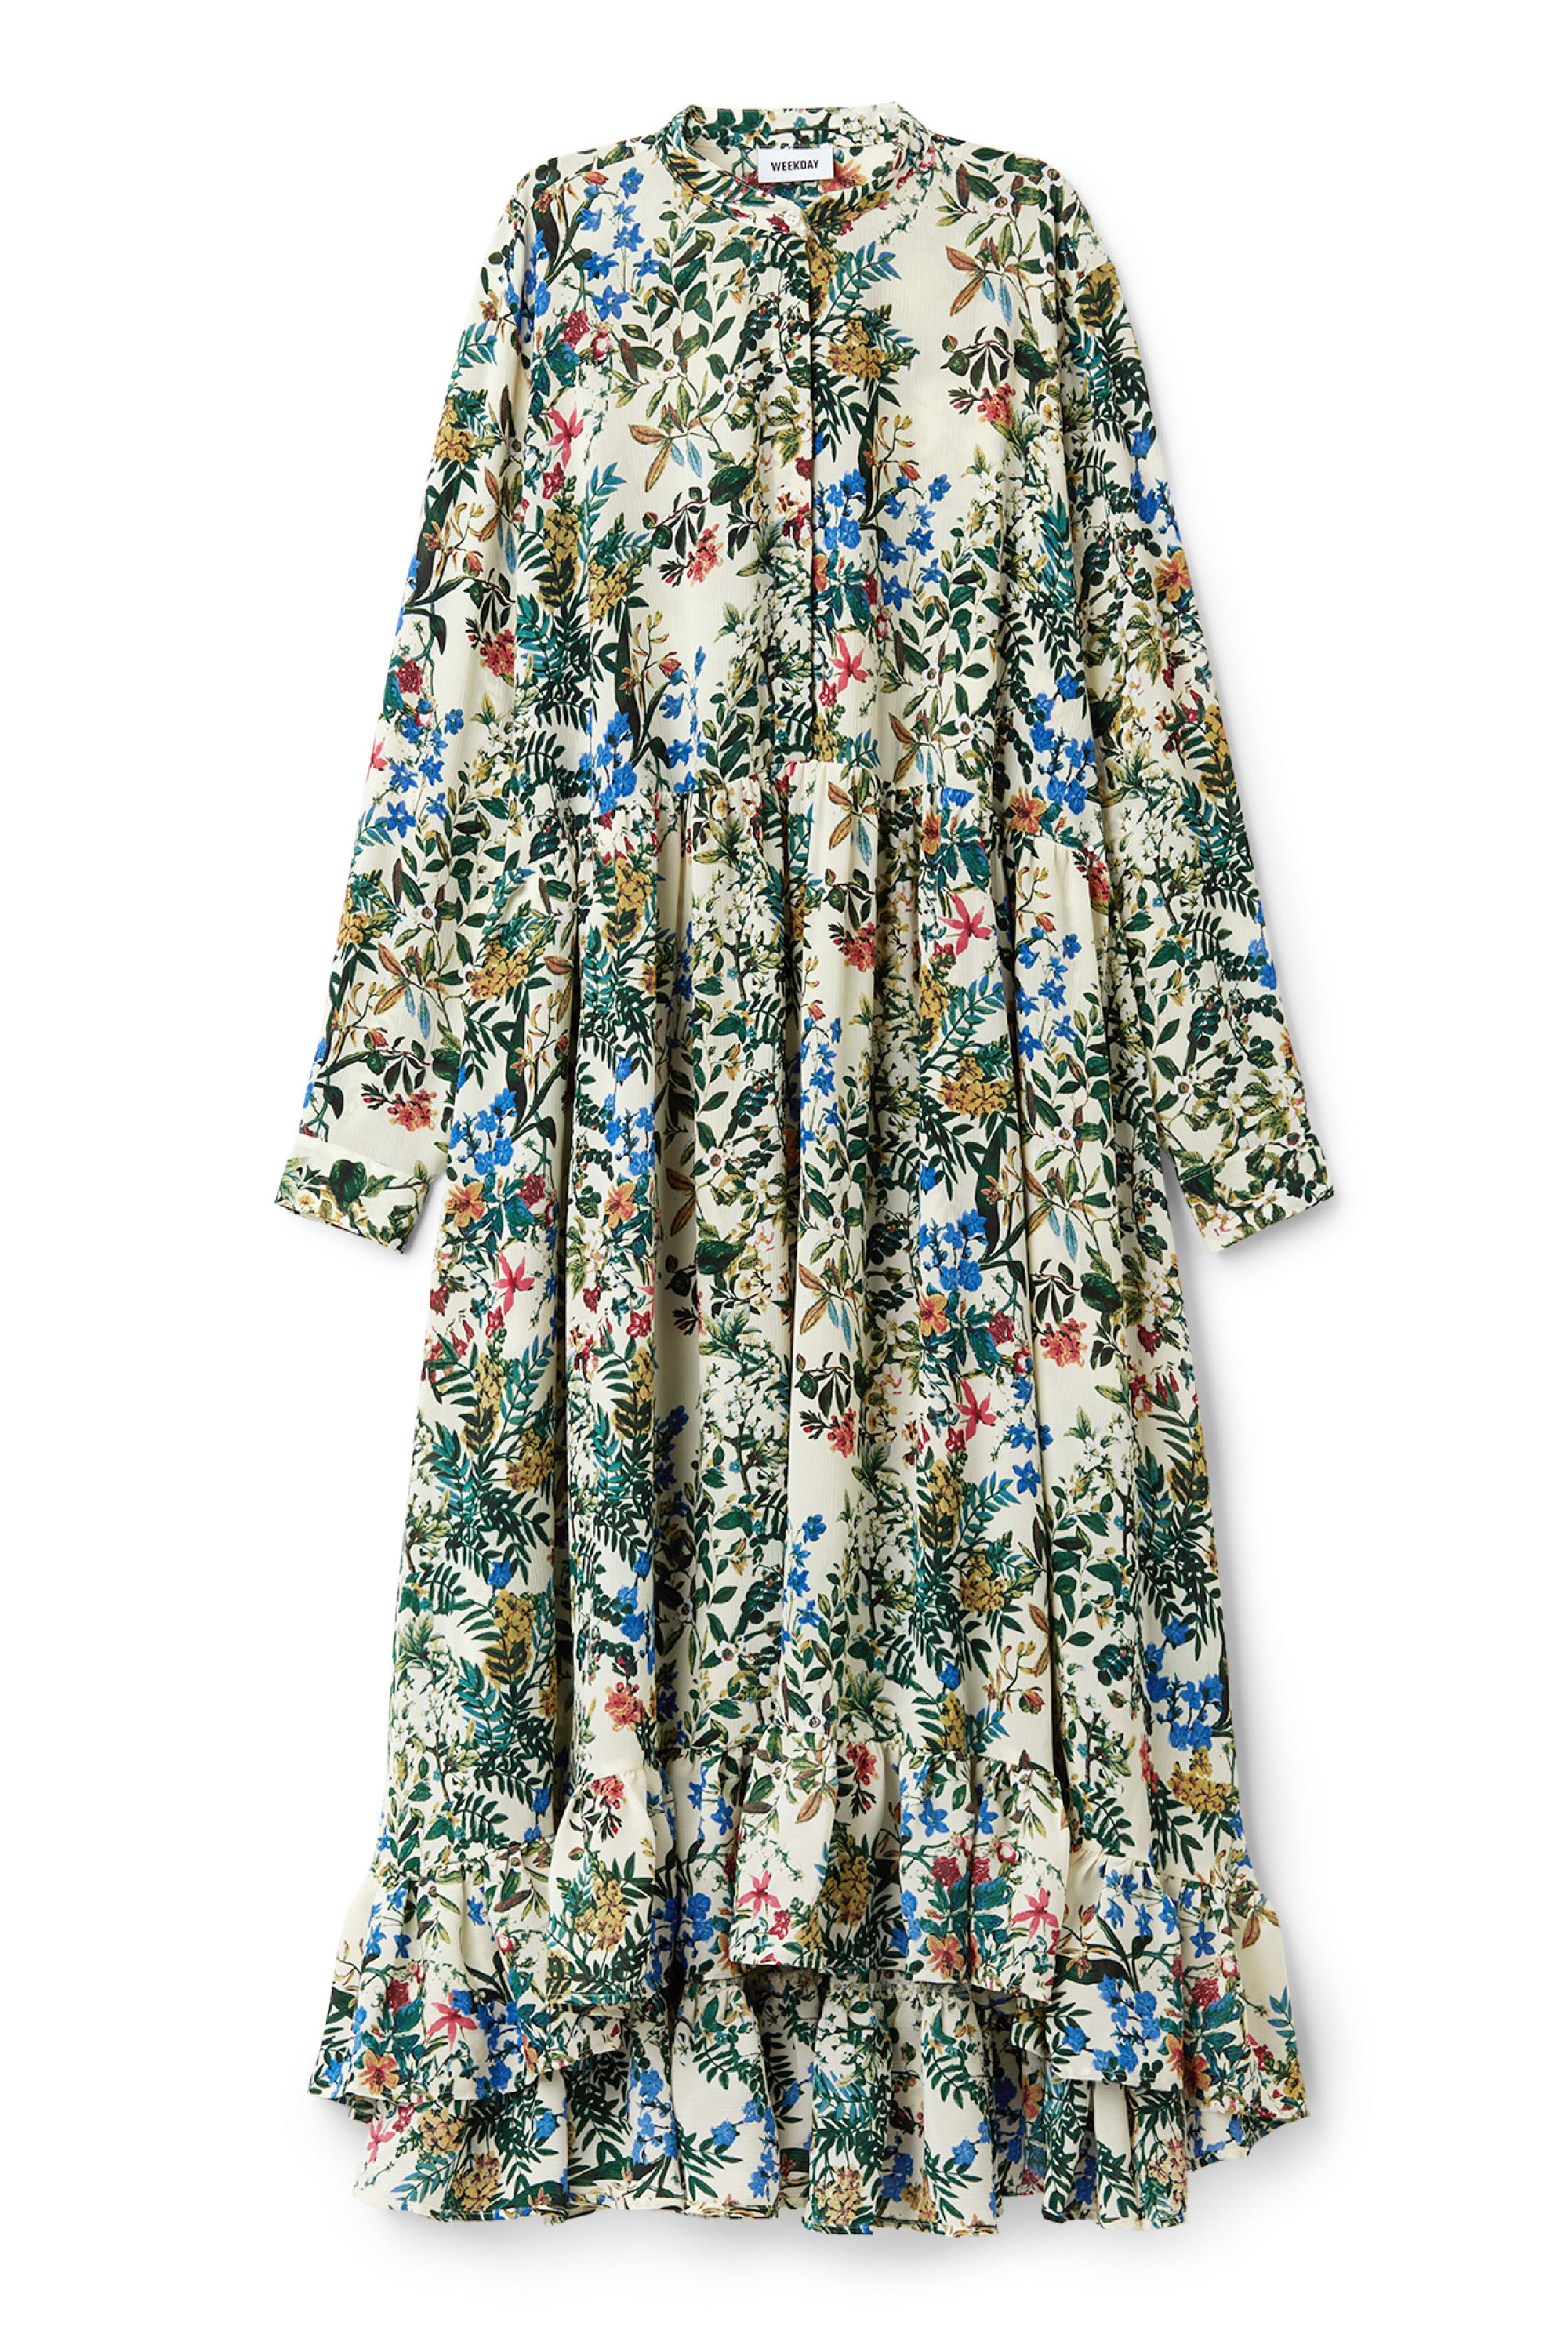 Possible Royal Wedding Guest Style Kate Embroidery Blouse In Blue Beatrice Clothing Its Floral Check For Special Occasion Comfortable Postpartum And Only 55 Budget Loving